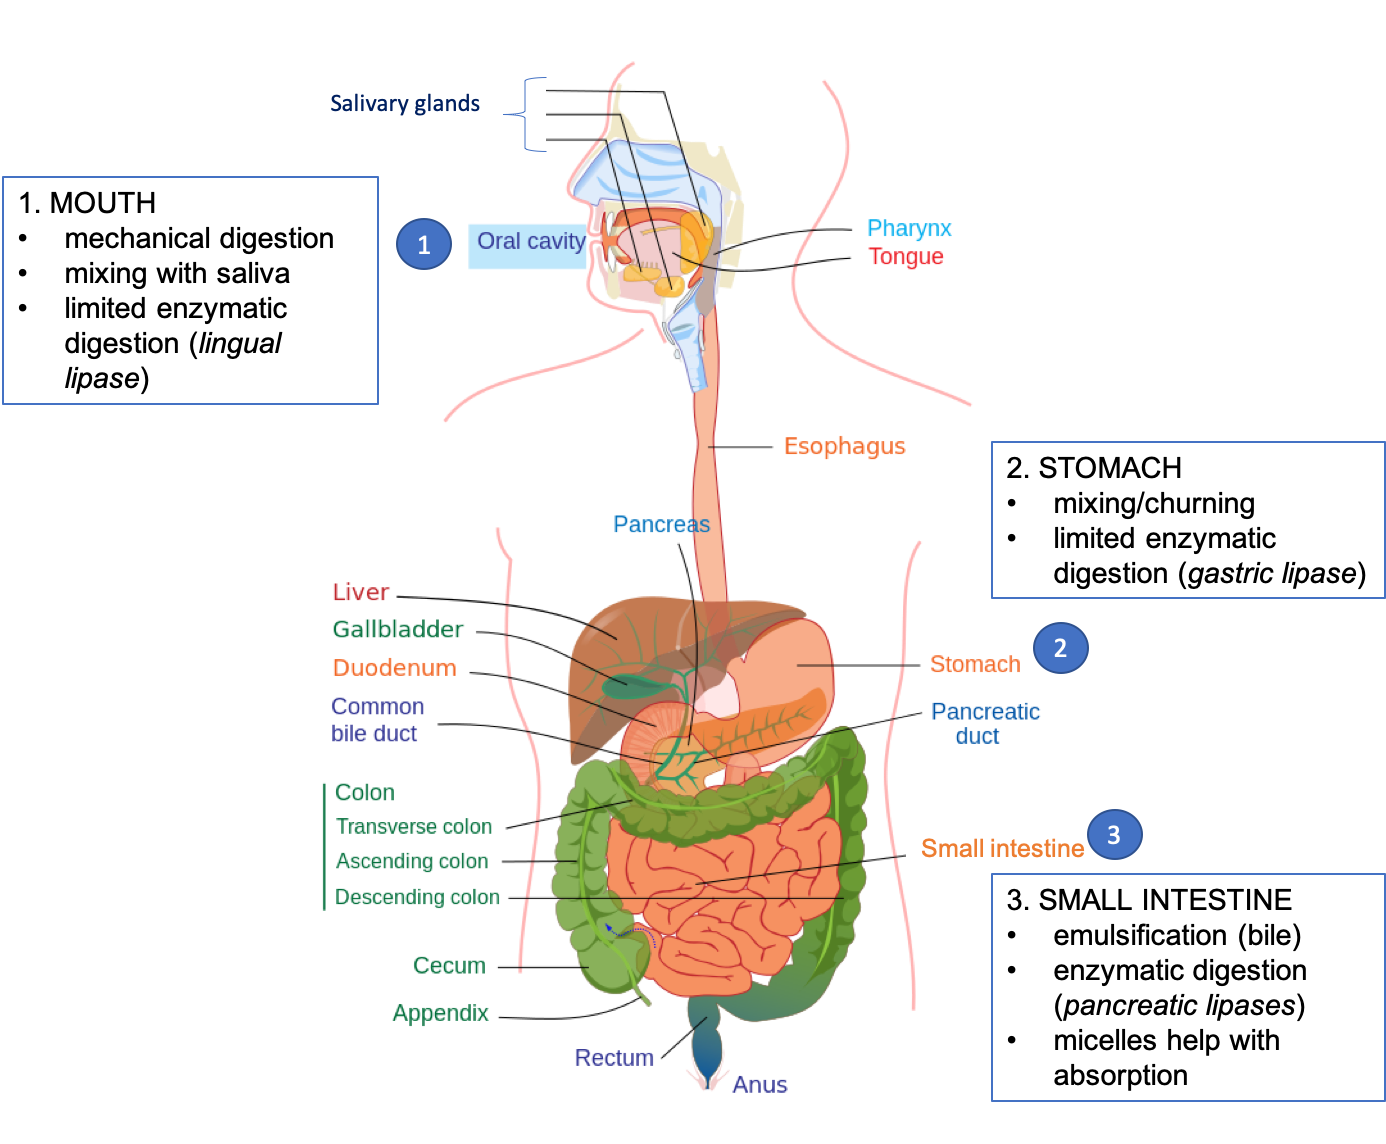 Cartoon diagram showing the organs of the gastrointestinal tract and the steps of lipid digestion that occur in each organ. In the mouth: mechanical digestion, mixing with saliva, and limited enzymatic digestion (lingual lipase). In the stomach: mixing/churning, limited enzymatic digestion (gastric lipase). In the small intestine: emulsification (bile), enzymatic digestion (pancreatic lipases), micelles help with absorption.